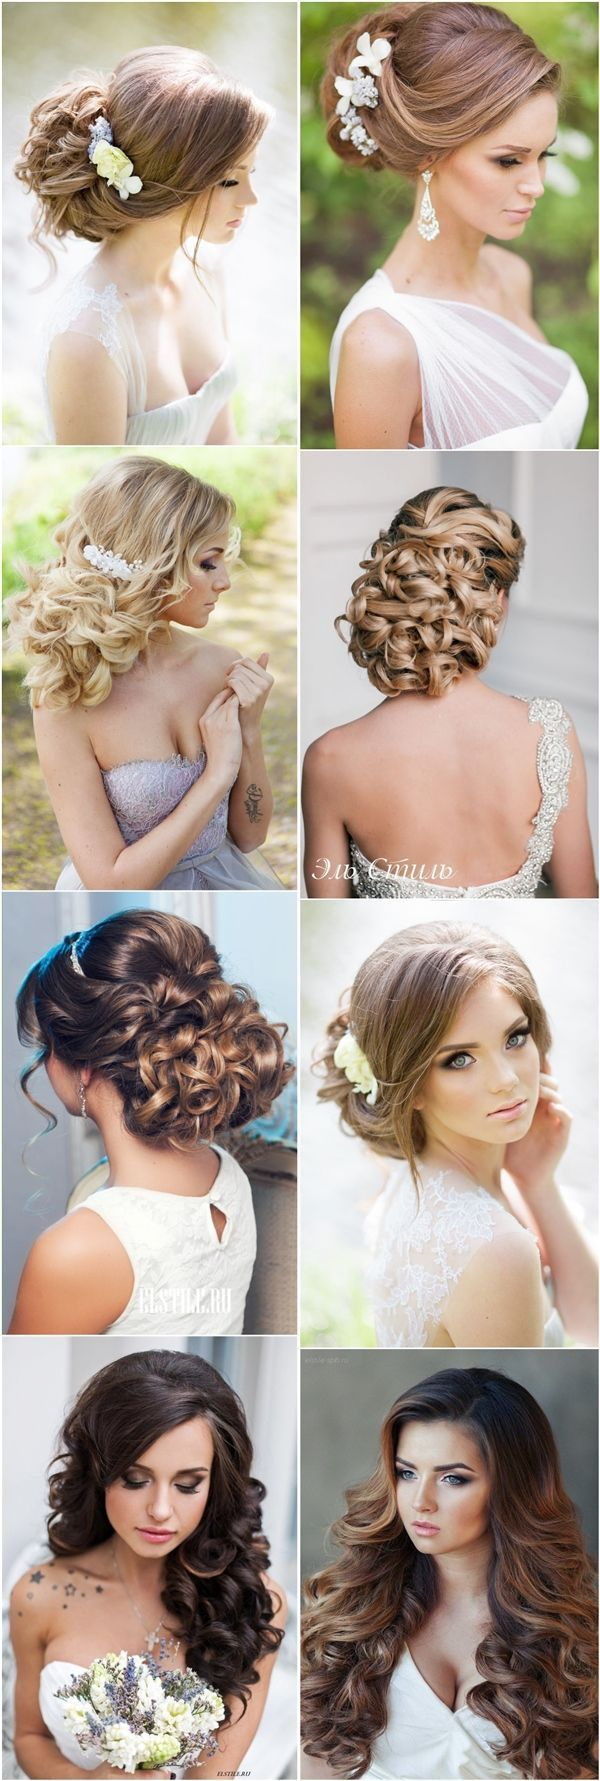 Hairstyles bun Spanking with veil